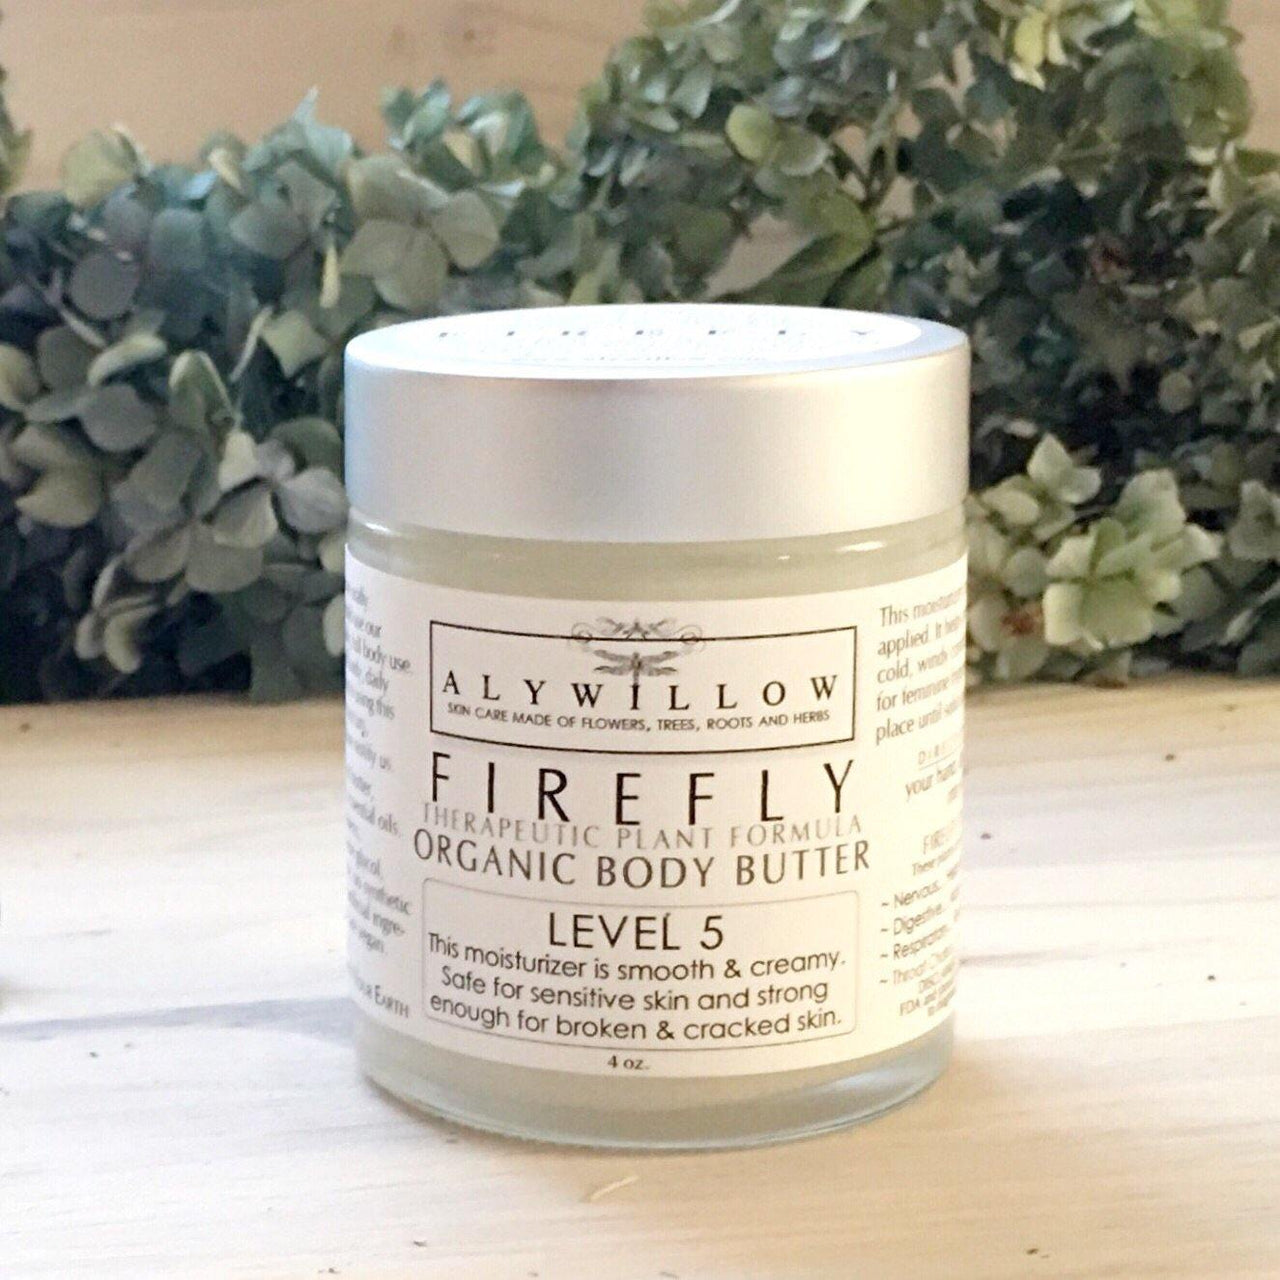 FIREFLY Level 5 Body Butter Moisturizer - Alywillow